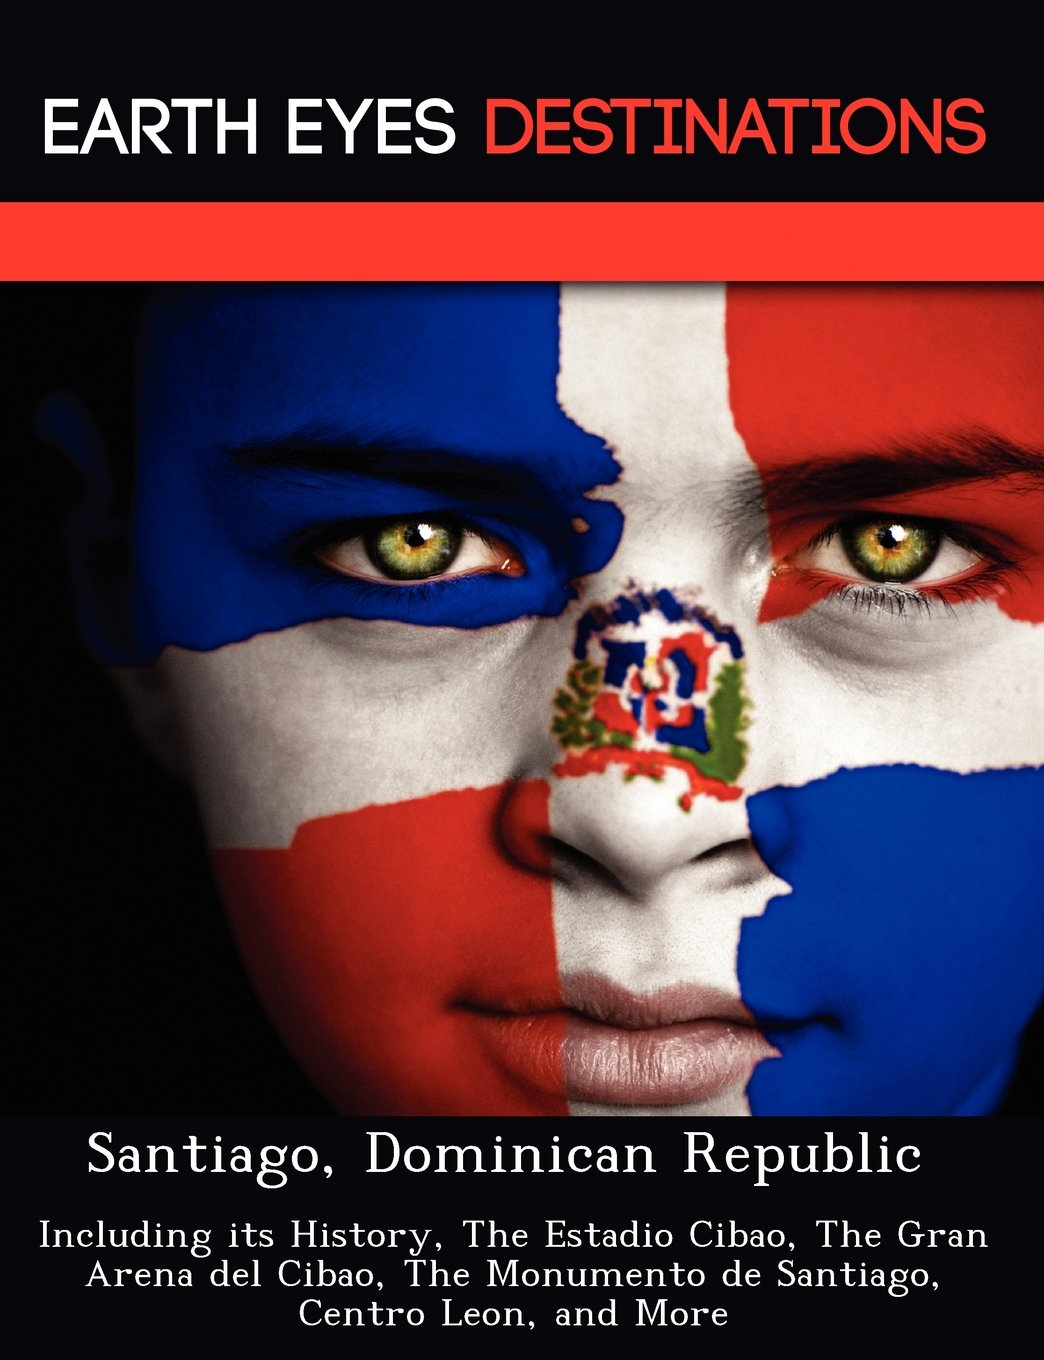 Santiago, Dominican Republic: Including its History, The Estadio Cibao, The Gran Arena del Cibao, The Monumento de Santiago, Centro Leon, and More